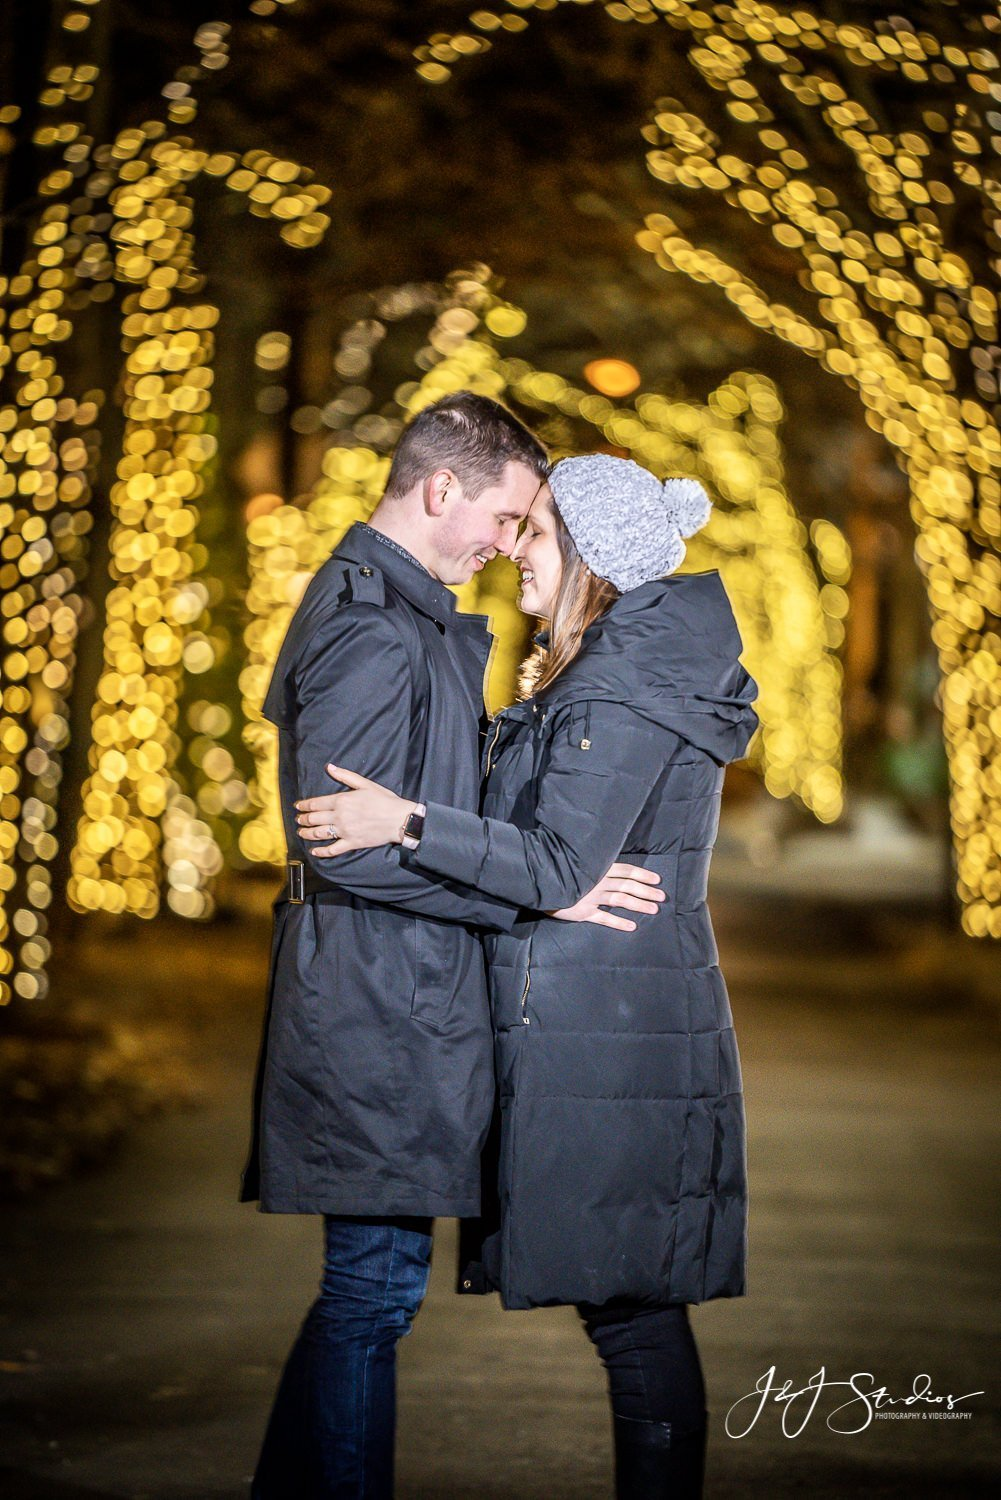 addison street proposal philly The Best Places to Propose in Philadelphia